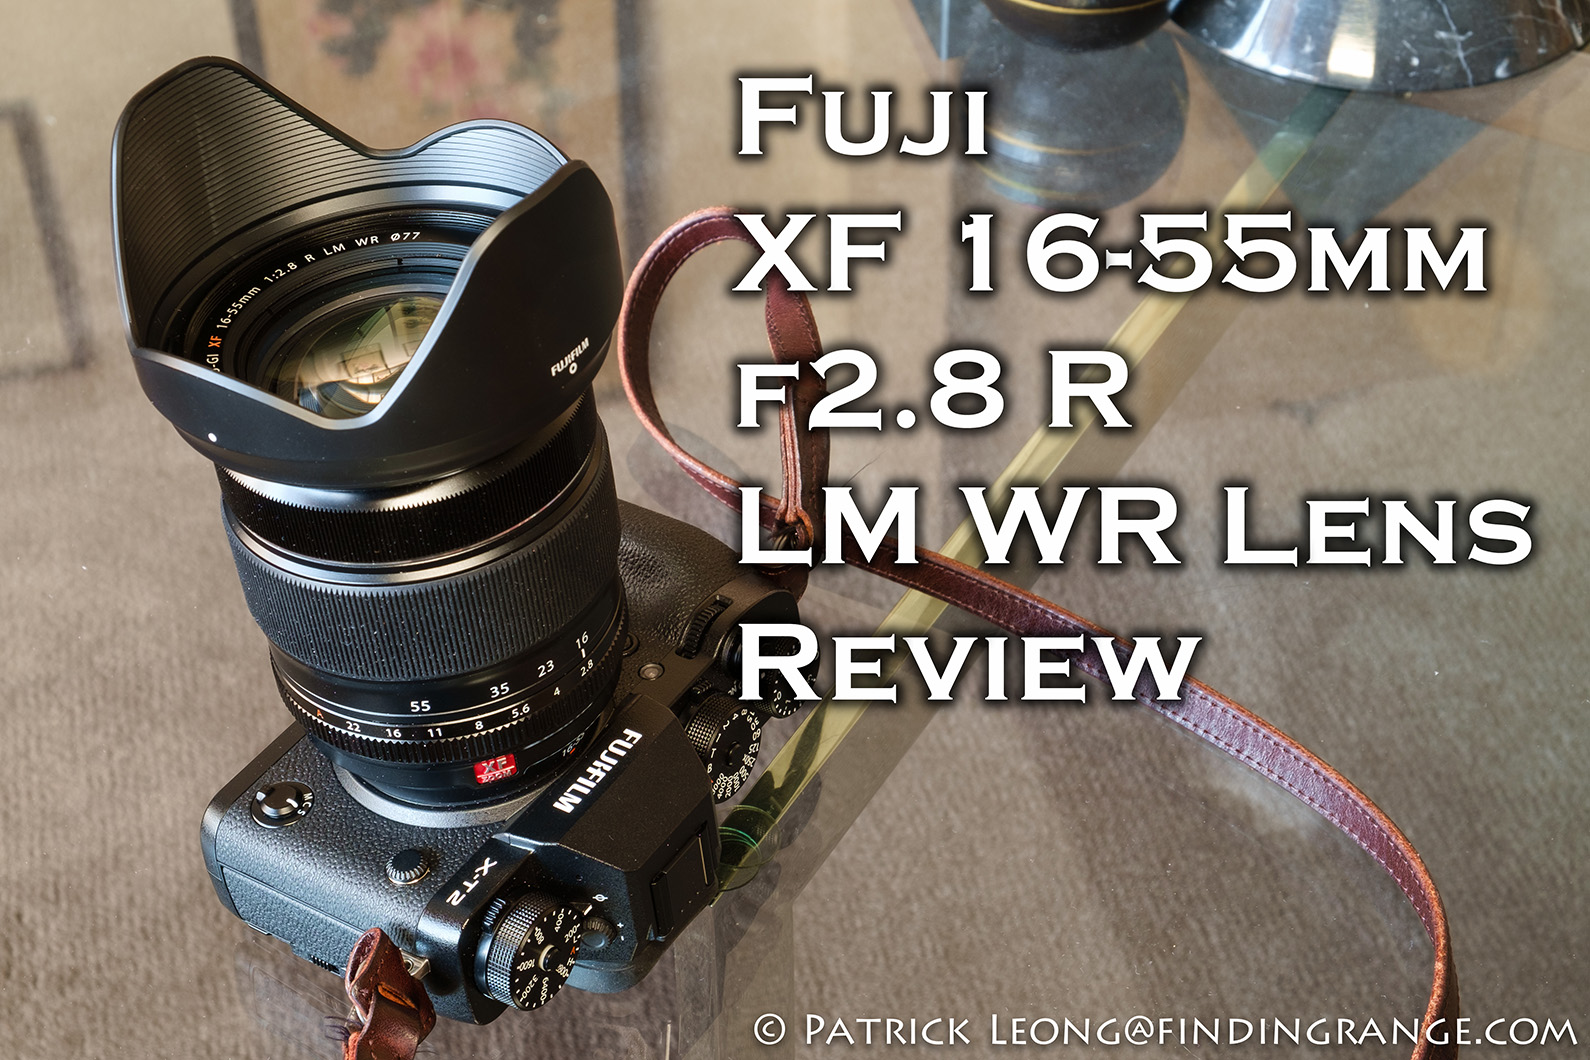 fuji-x-t2-xf-16-55mm-f2-8-r-lm-wr-lens-review-3